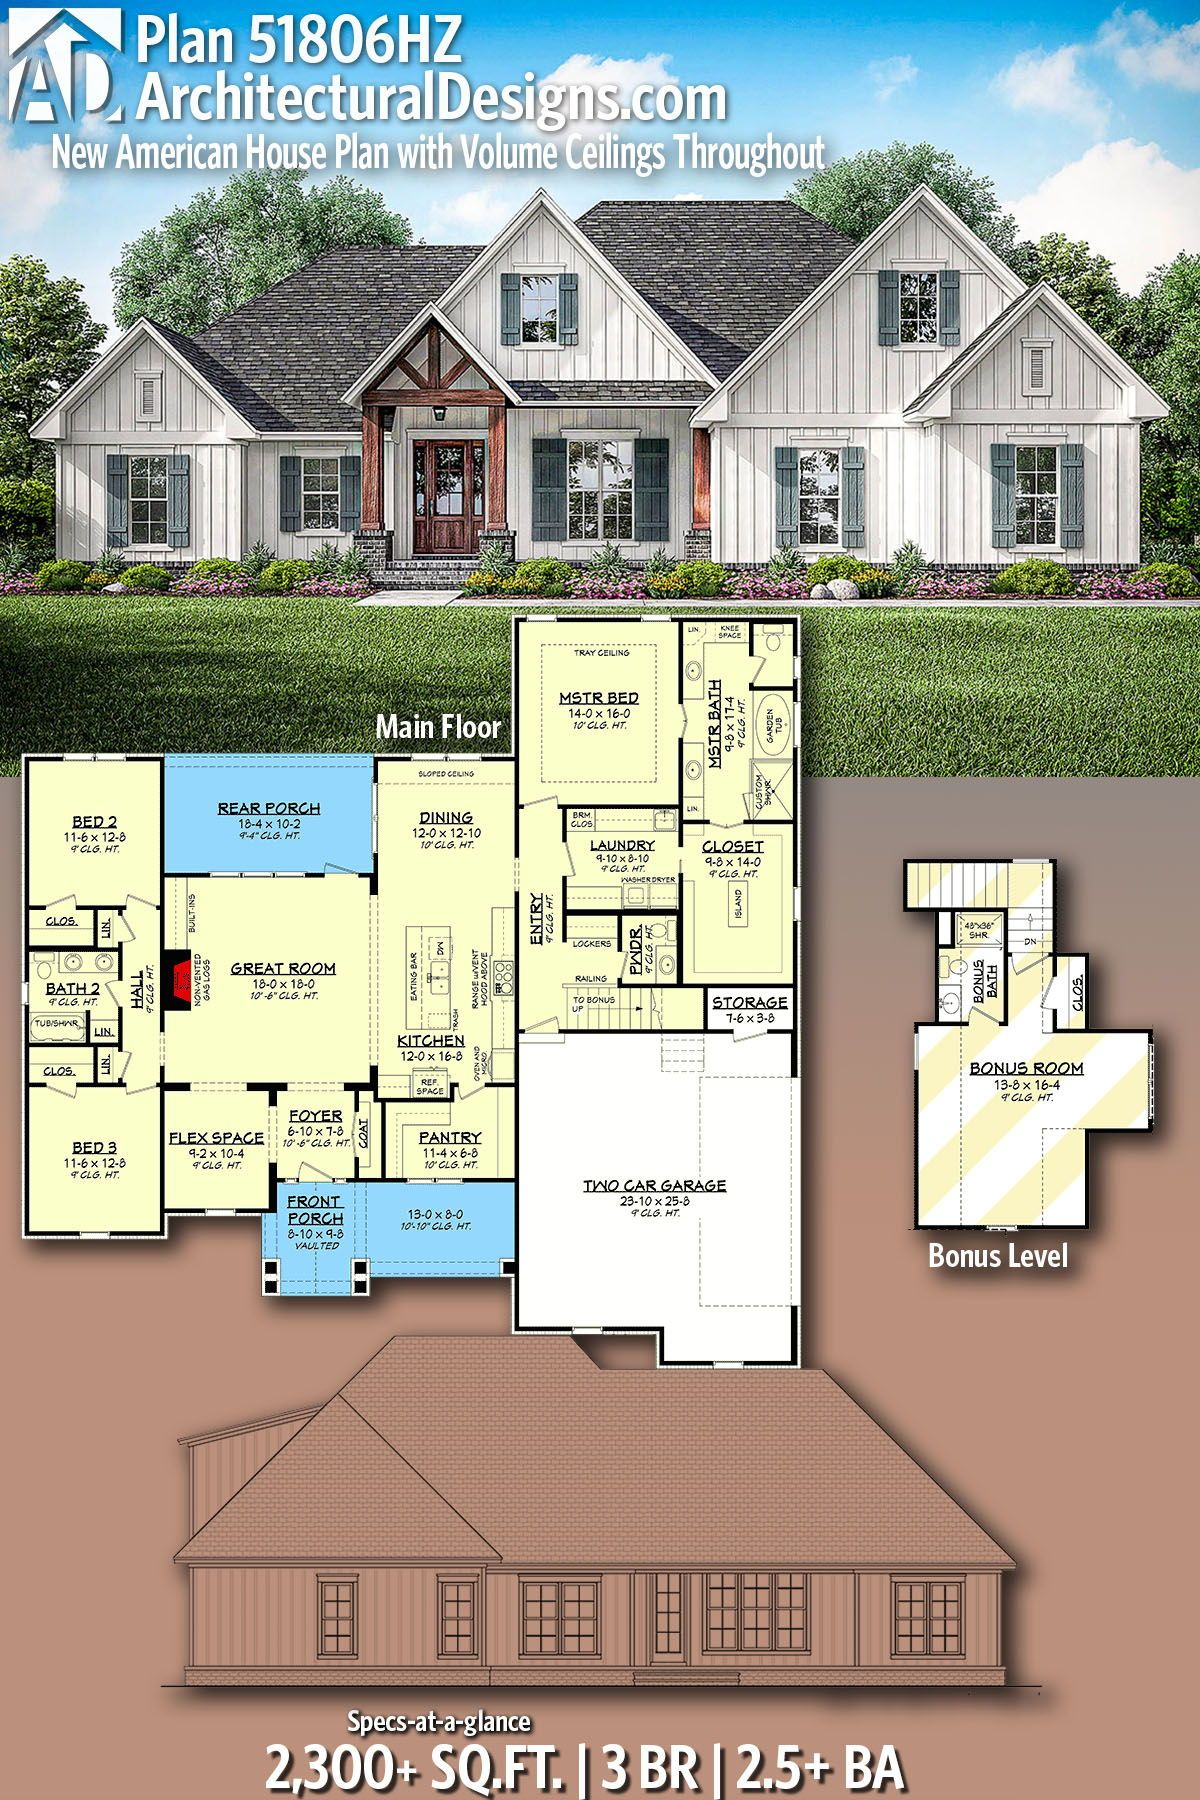 Plan 51806hz New American House Plan With Volume Ceilings Throughout New House Plans House Plans Farmhouse American Houses